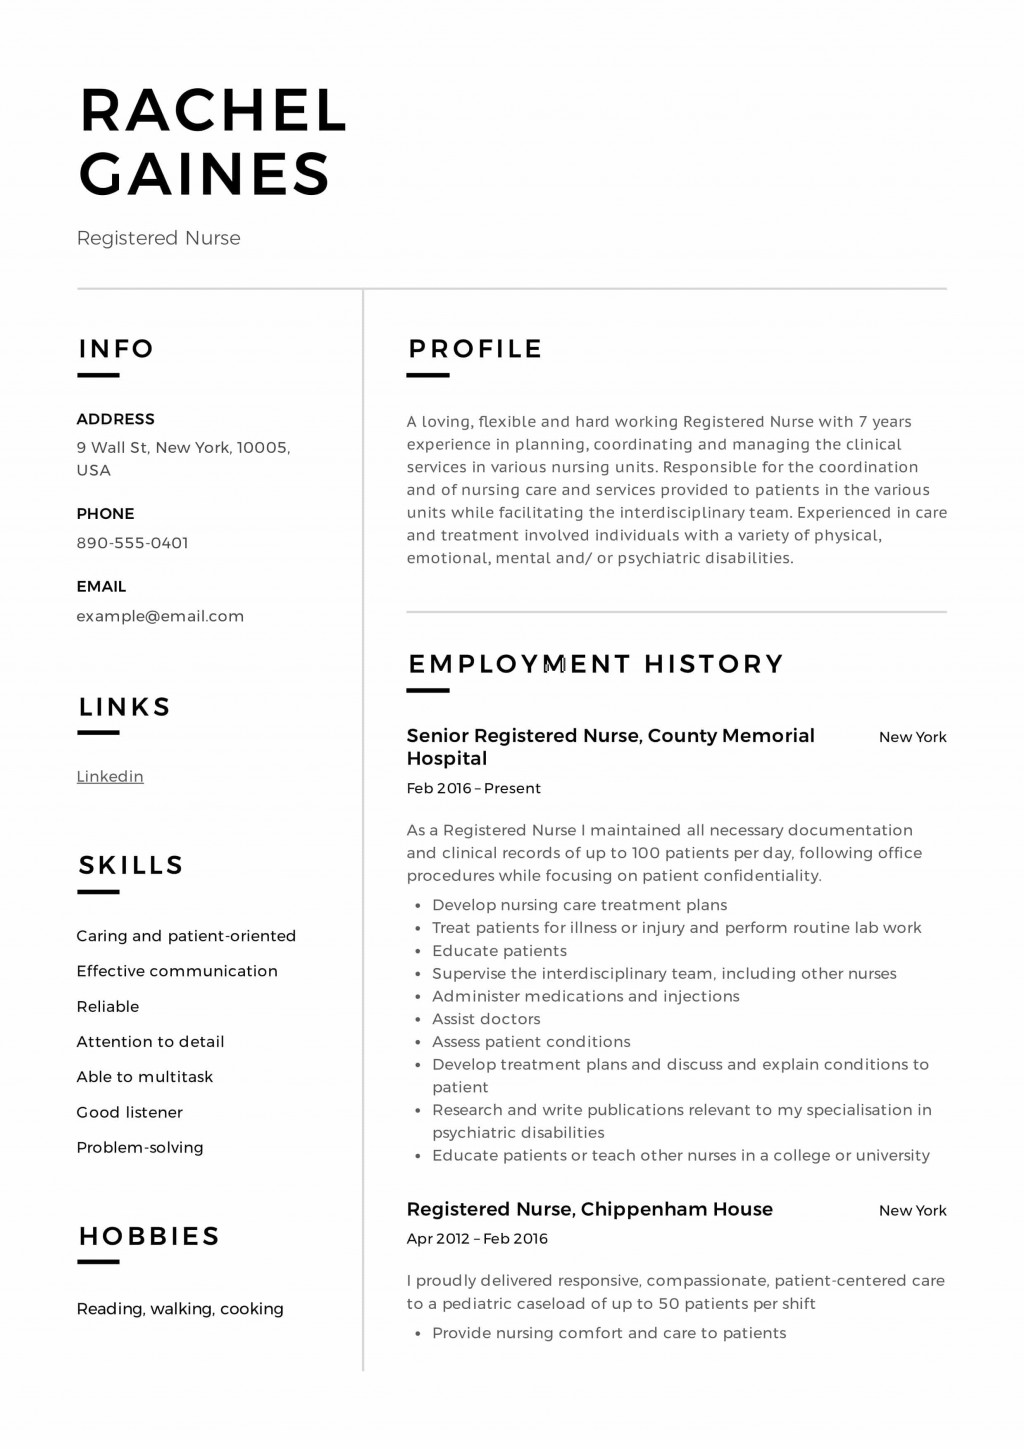 008 Impressive Resume Template For Nurse Inspiration  Sample Nursing Assistant With No Experience Rn' FreeLarge